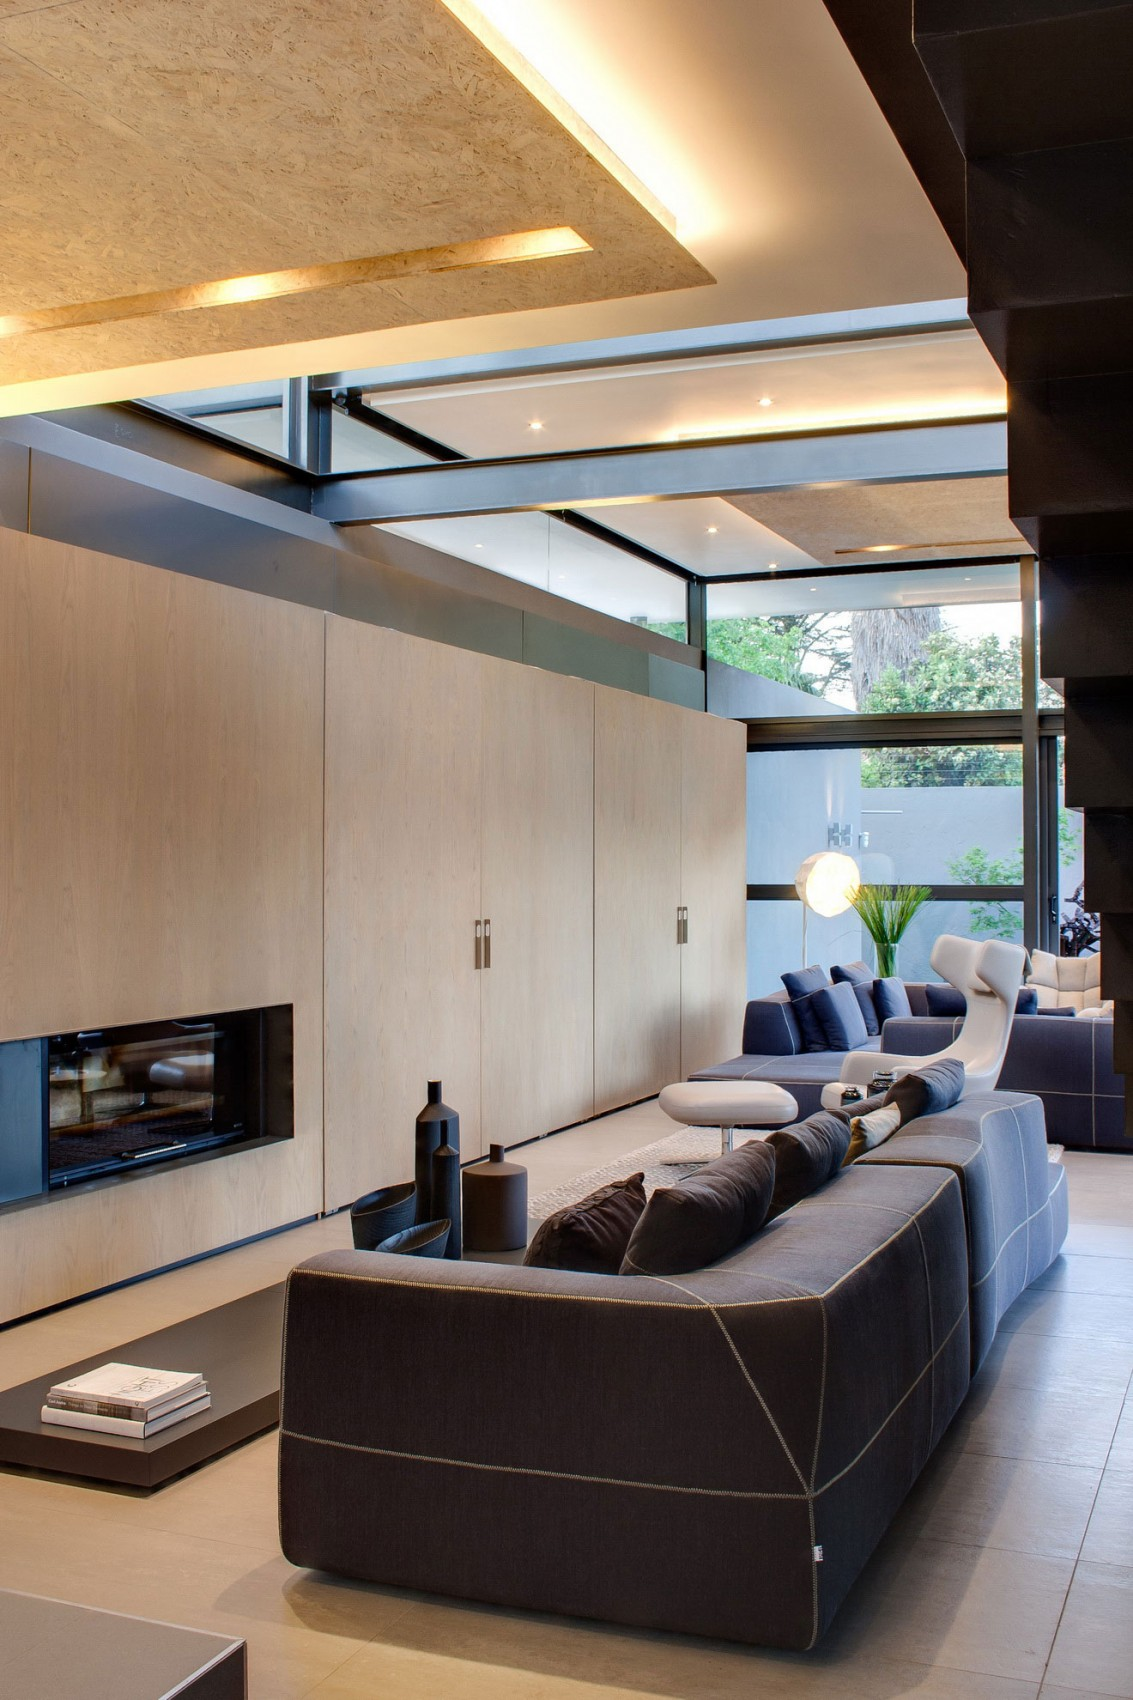 Bright living room design in House Sar by Nico van der Meulen Architects